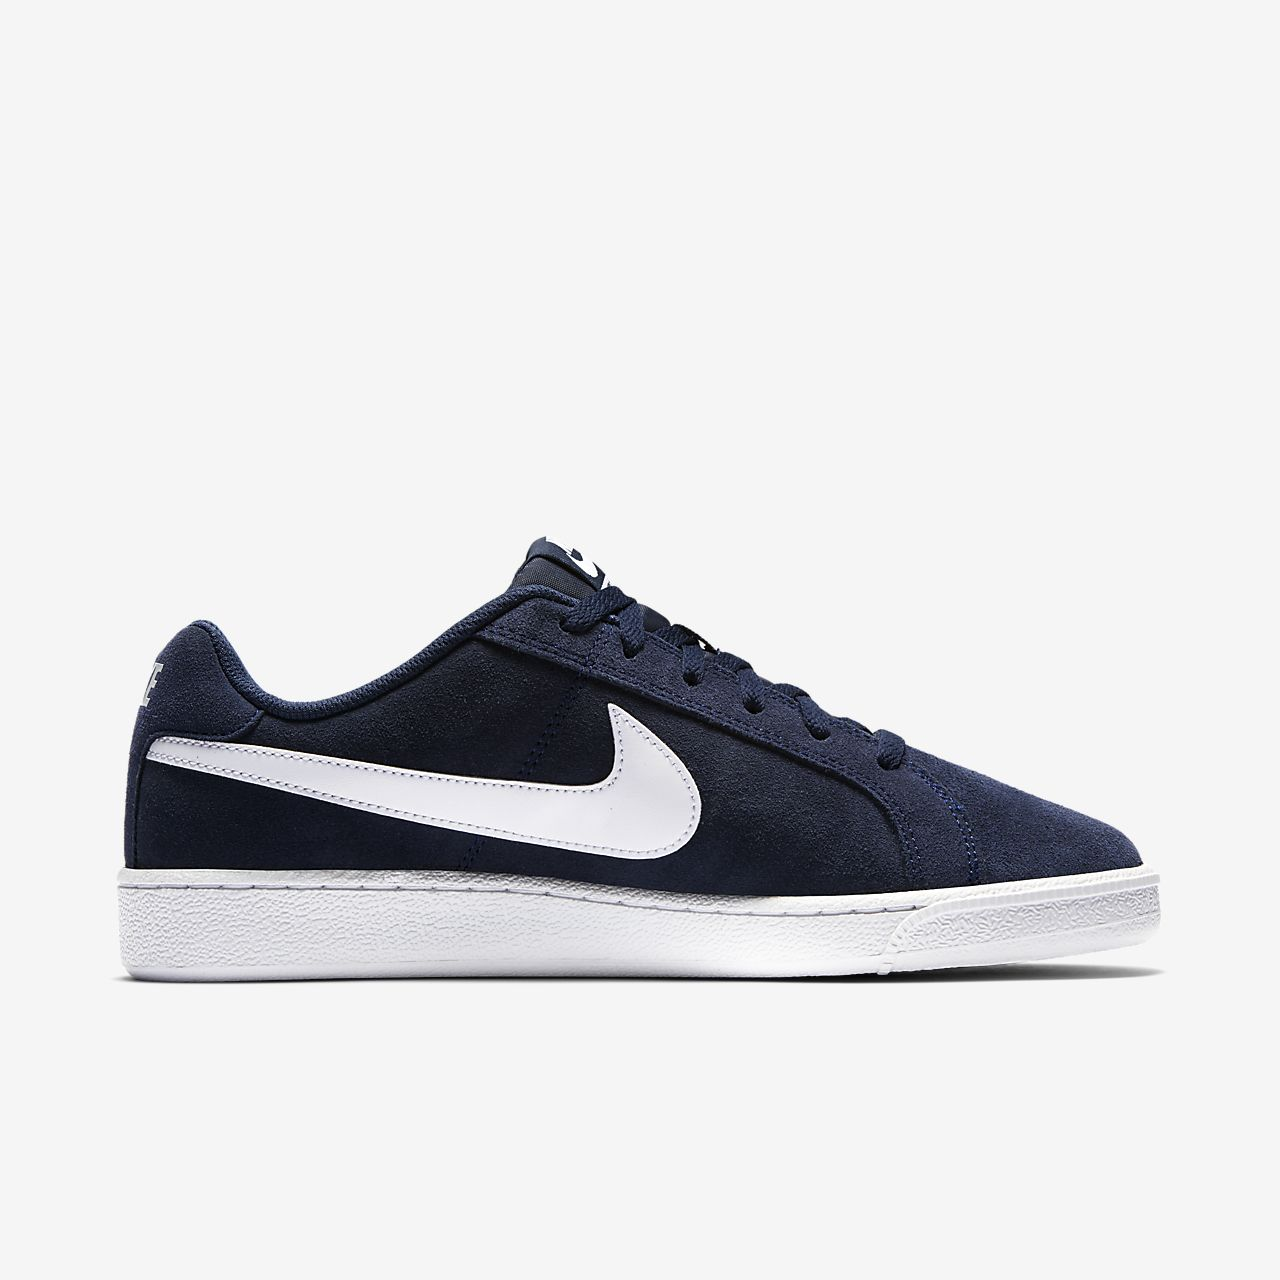 Nike Court Royale Suede Zapatillas de Tenis Hombre, Azul/Blanco (Midnight Navy/White), 39 EU